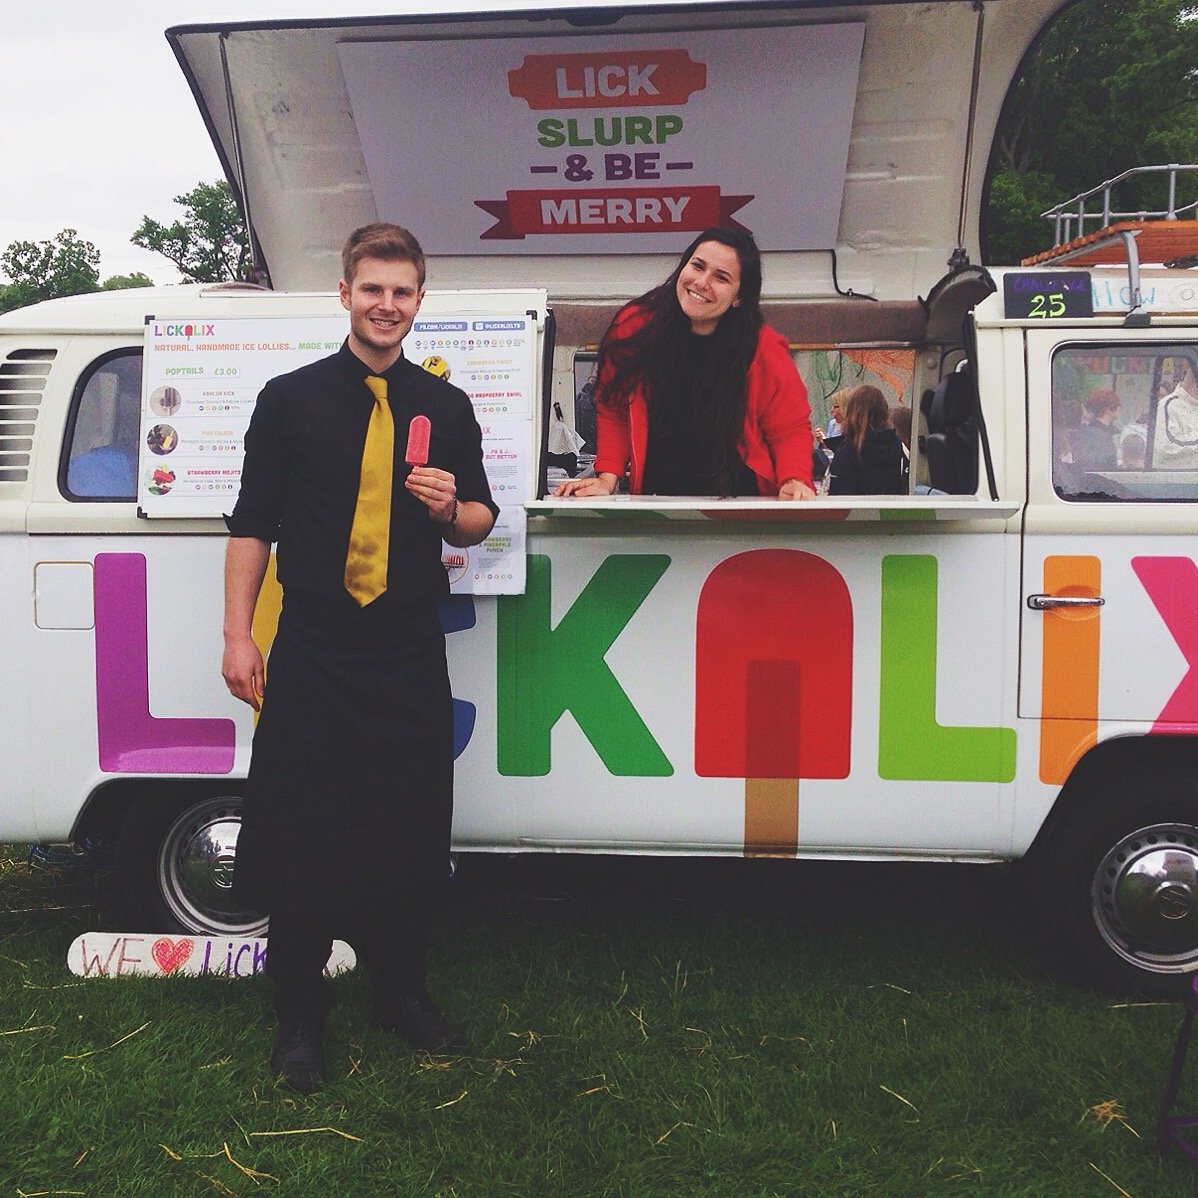 The employees at Blenheim Palace love our ice lollies!